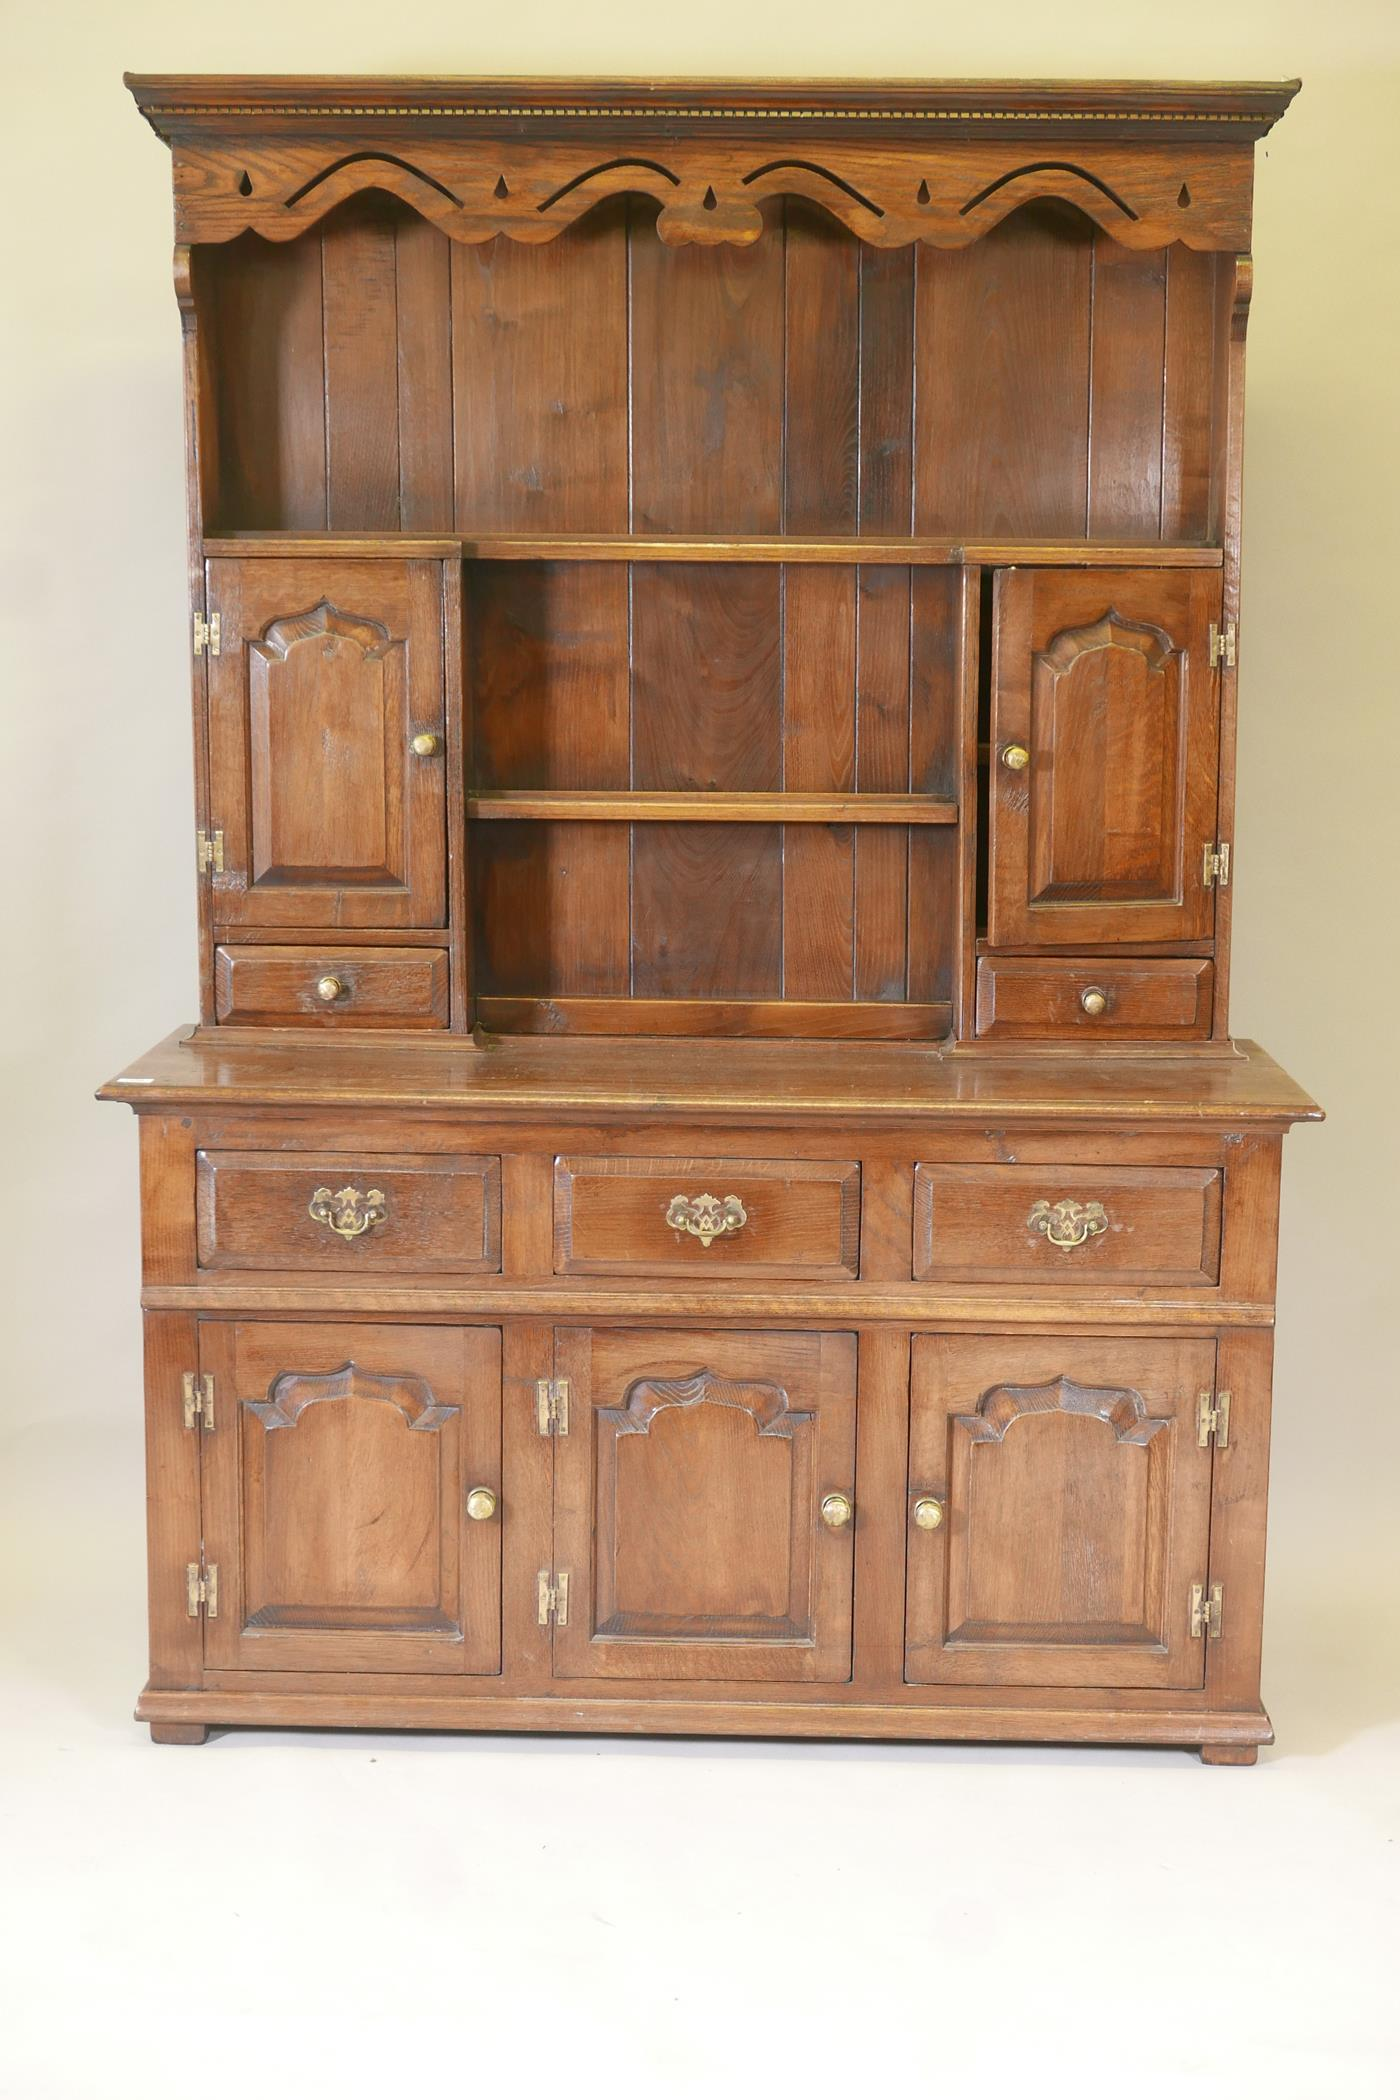 An oak dresser and plate rack with three drawers over three doors to the base, the upper section